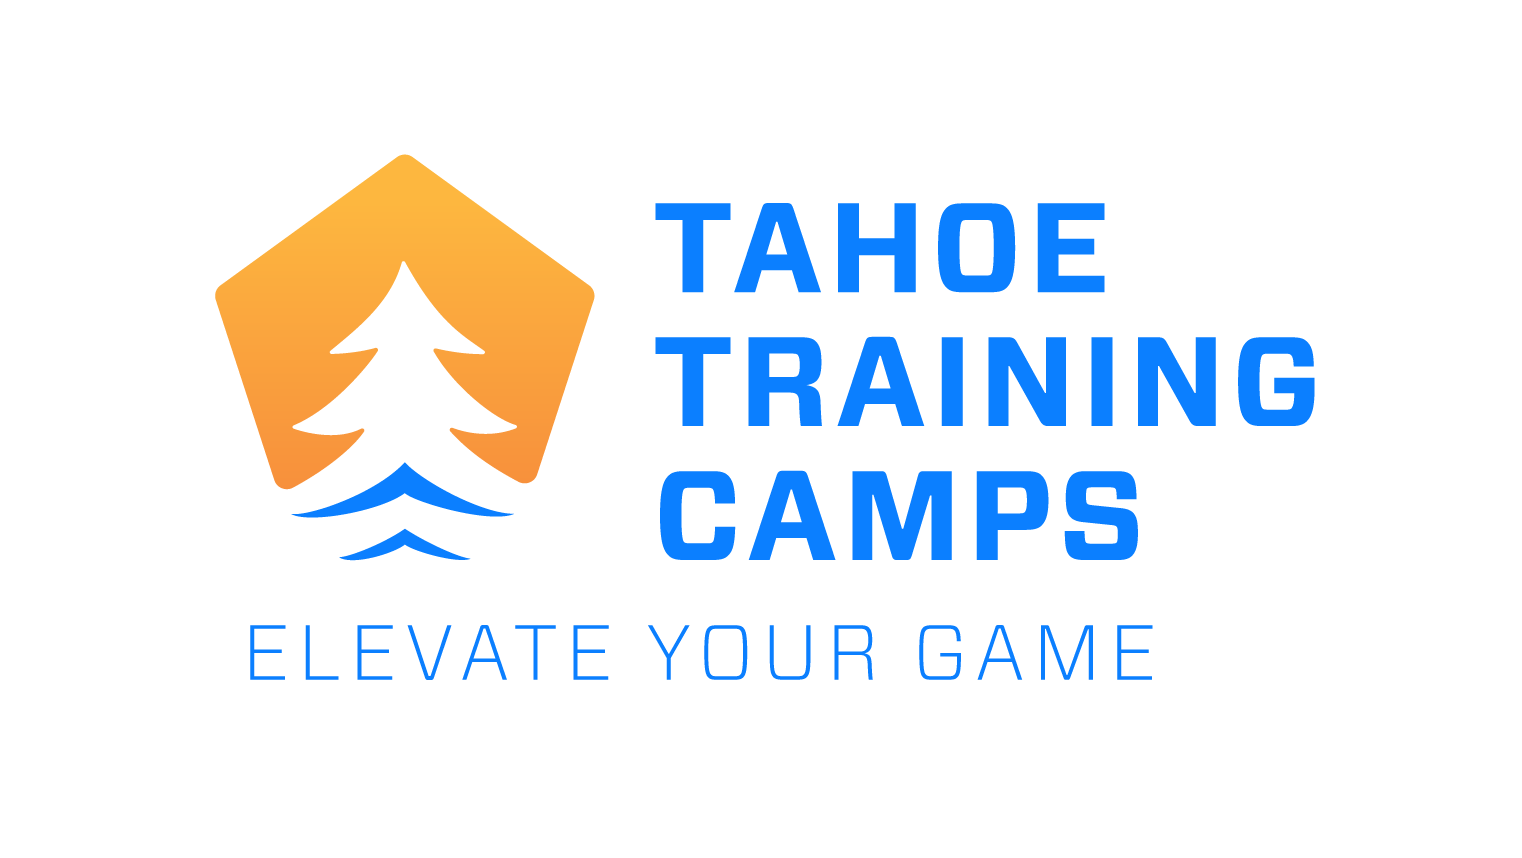 Tahoe Training Camps